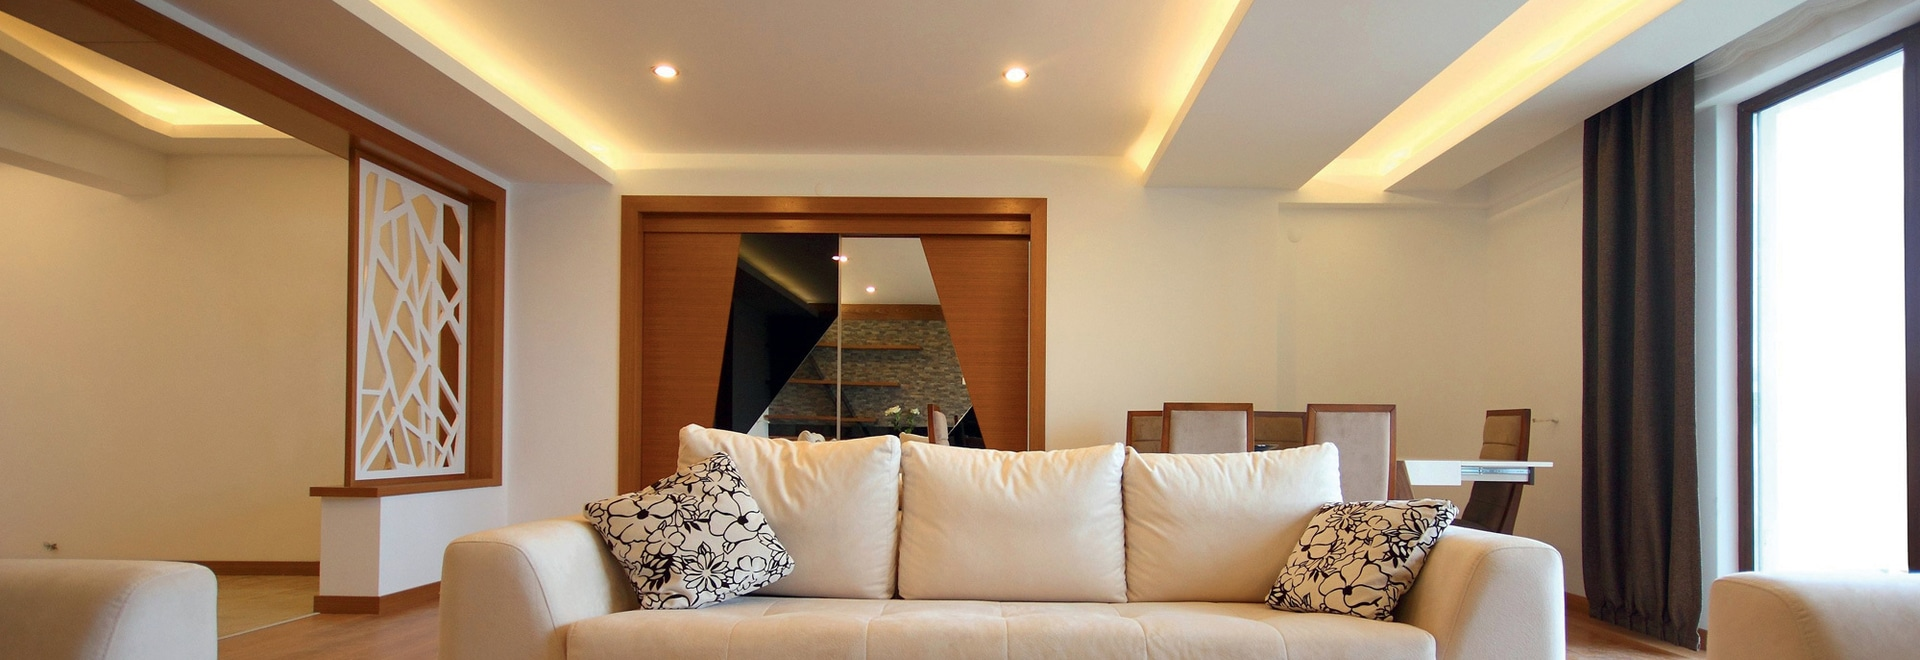 The top 10 mistakes not to make when choosing interior lighting